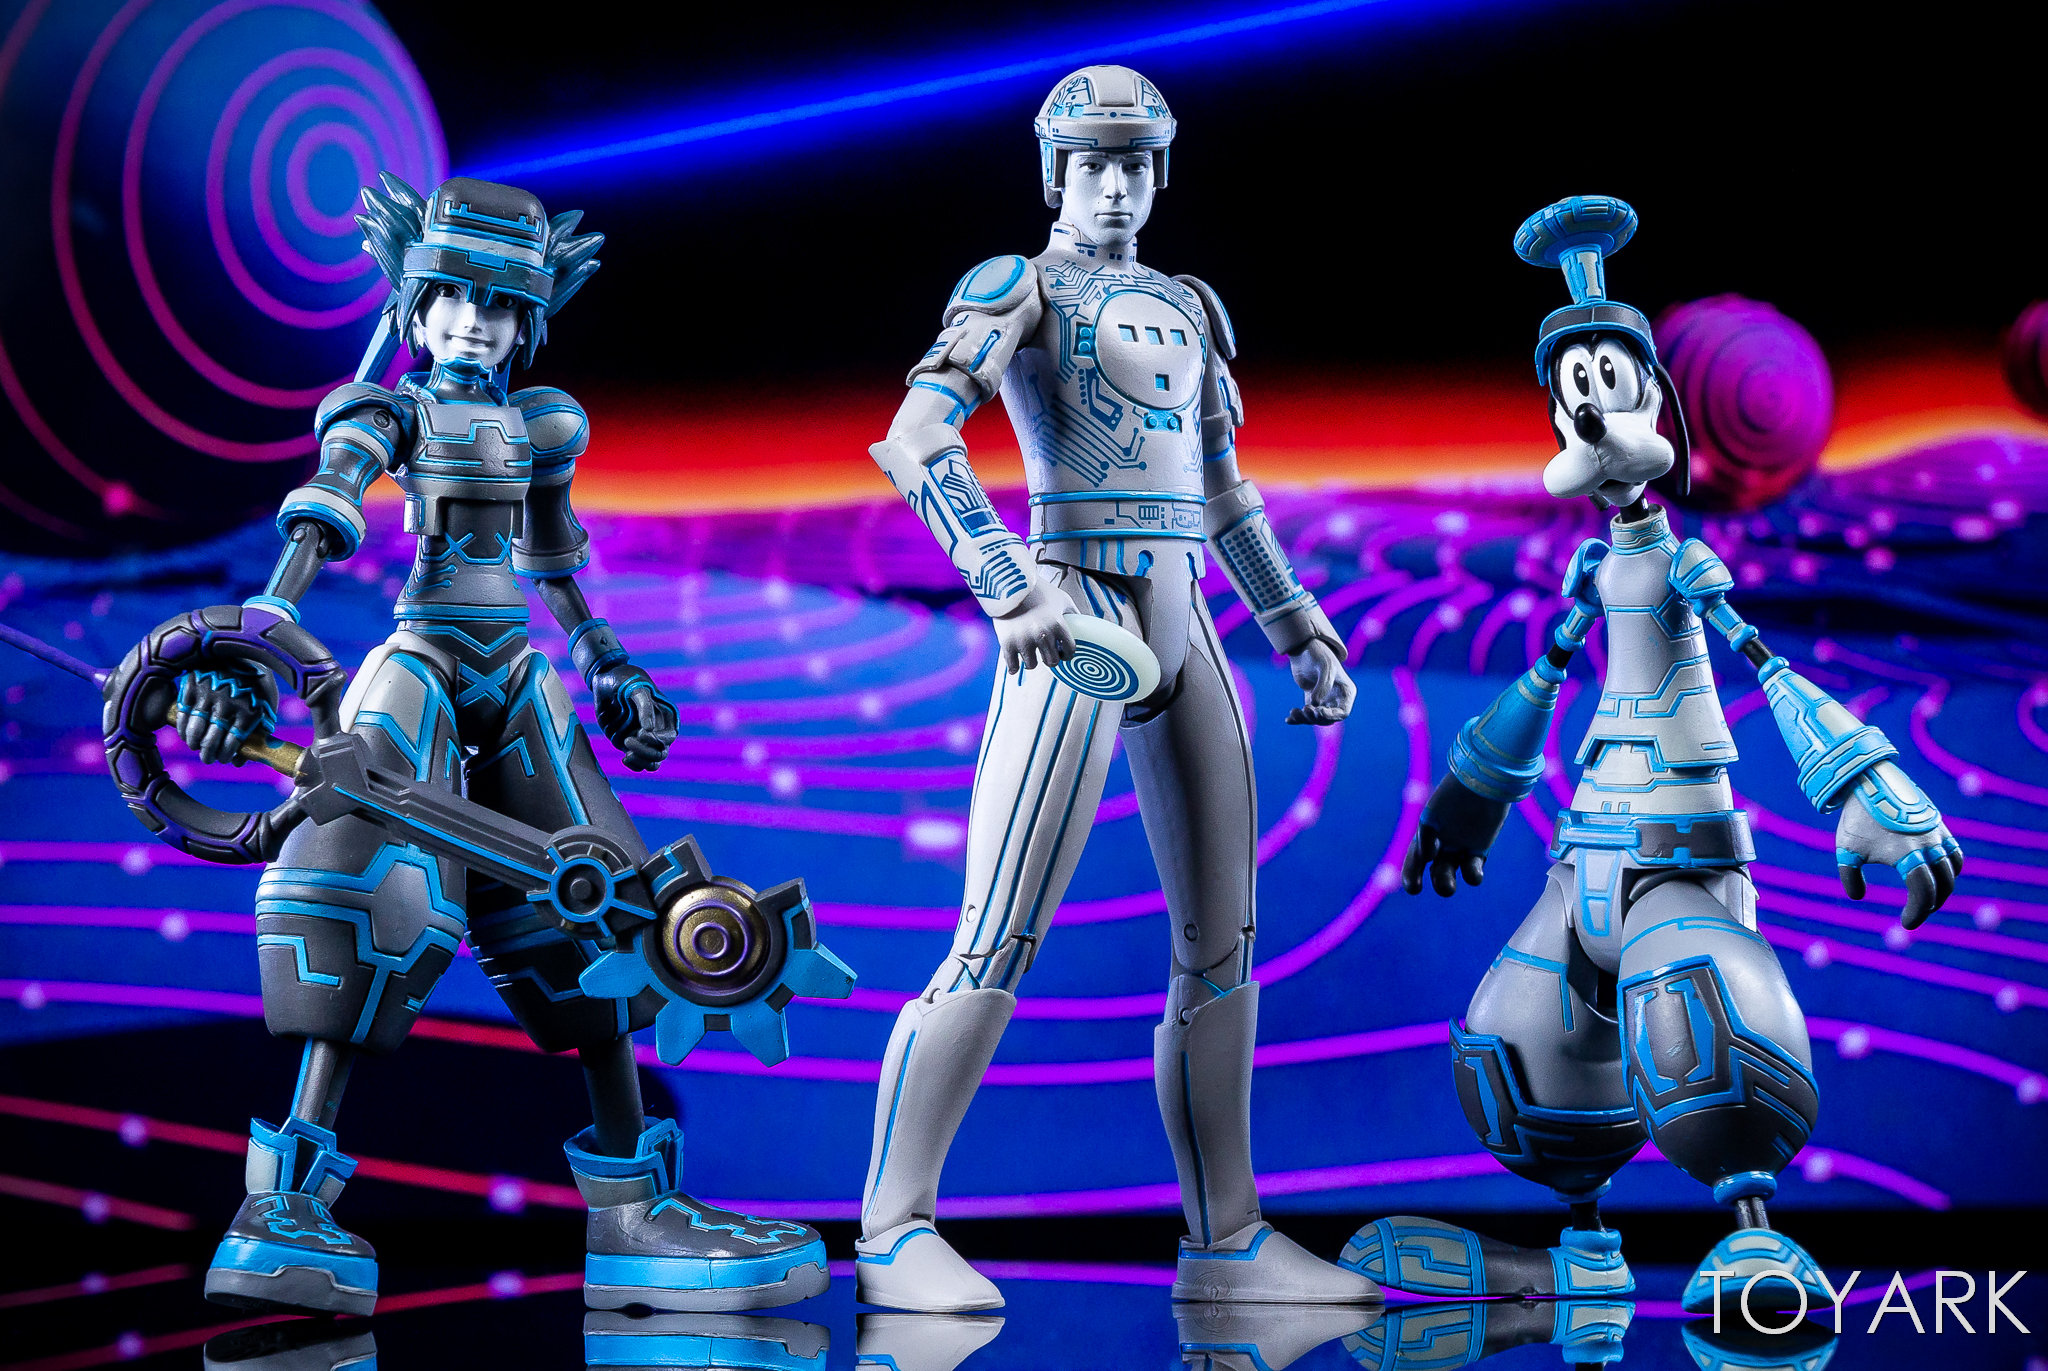 https://news.toyark.com/wp-content/uploads/sites/4/2019/02/DST-Kingdom-Hearts-Tron-027.jpg